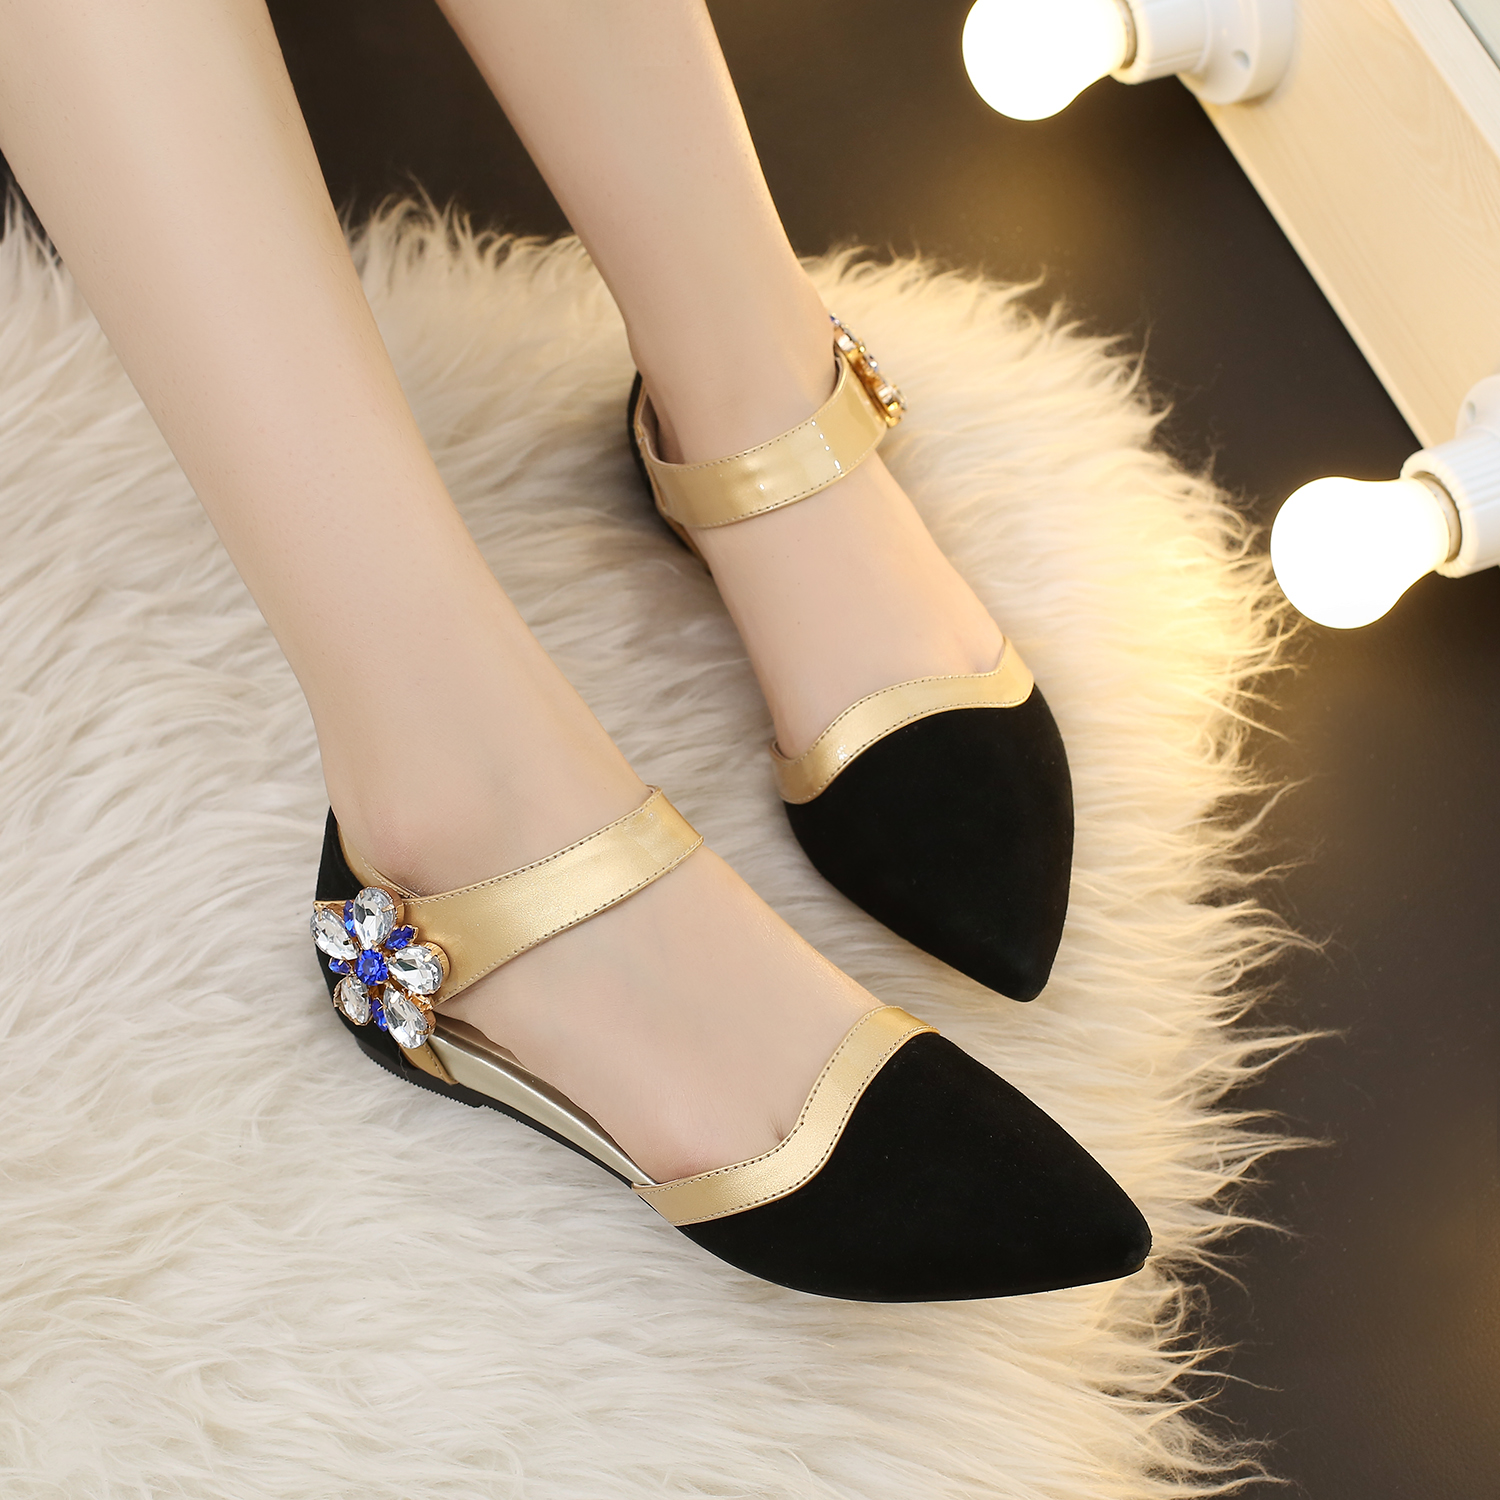 Fashion Flats Sandals Rhinestone Flower Hook Gold Silver Womens Sexy Pointed Light Weight Nubuck Leather Summer Shoes Casual<br><br>Aliexpress